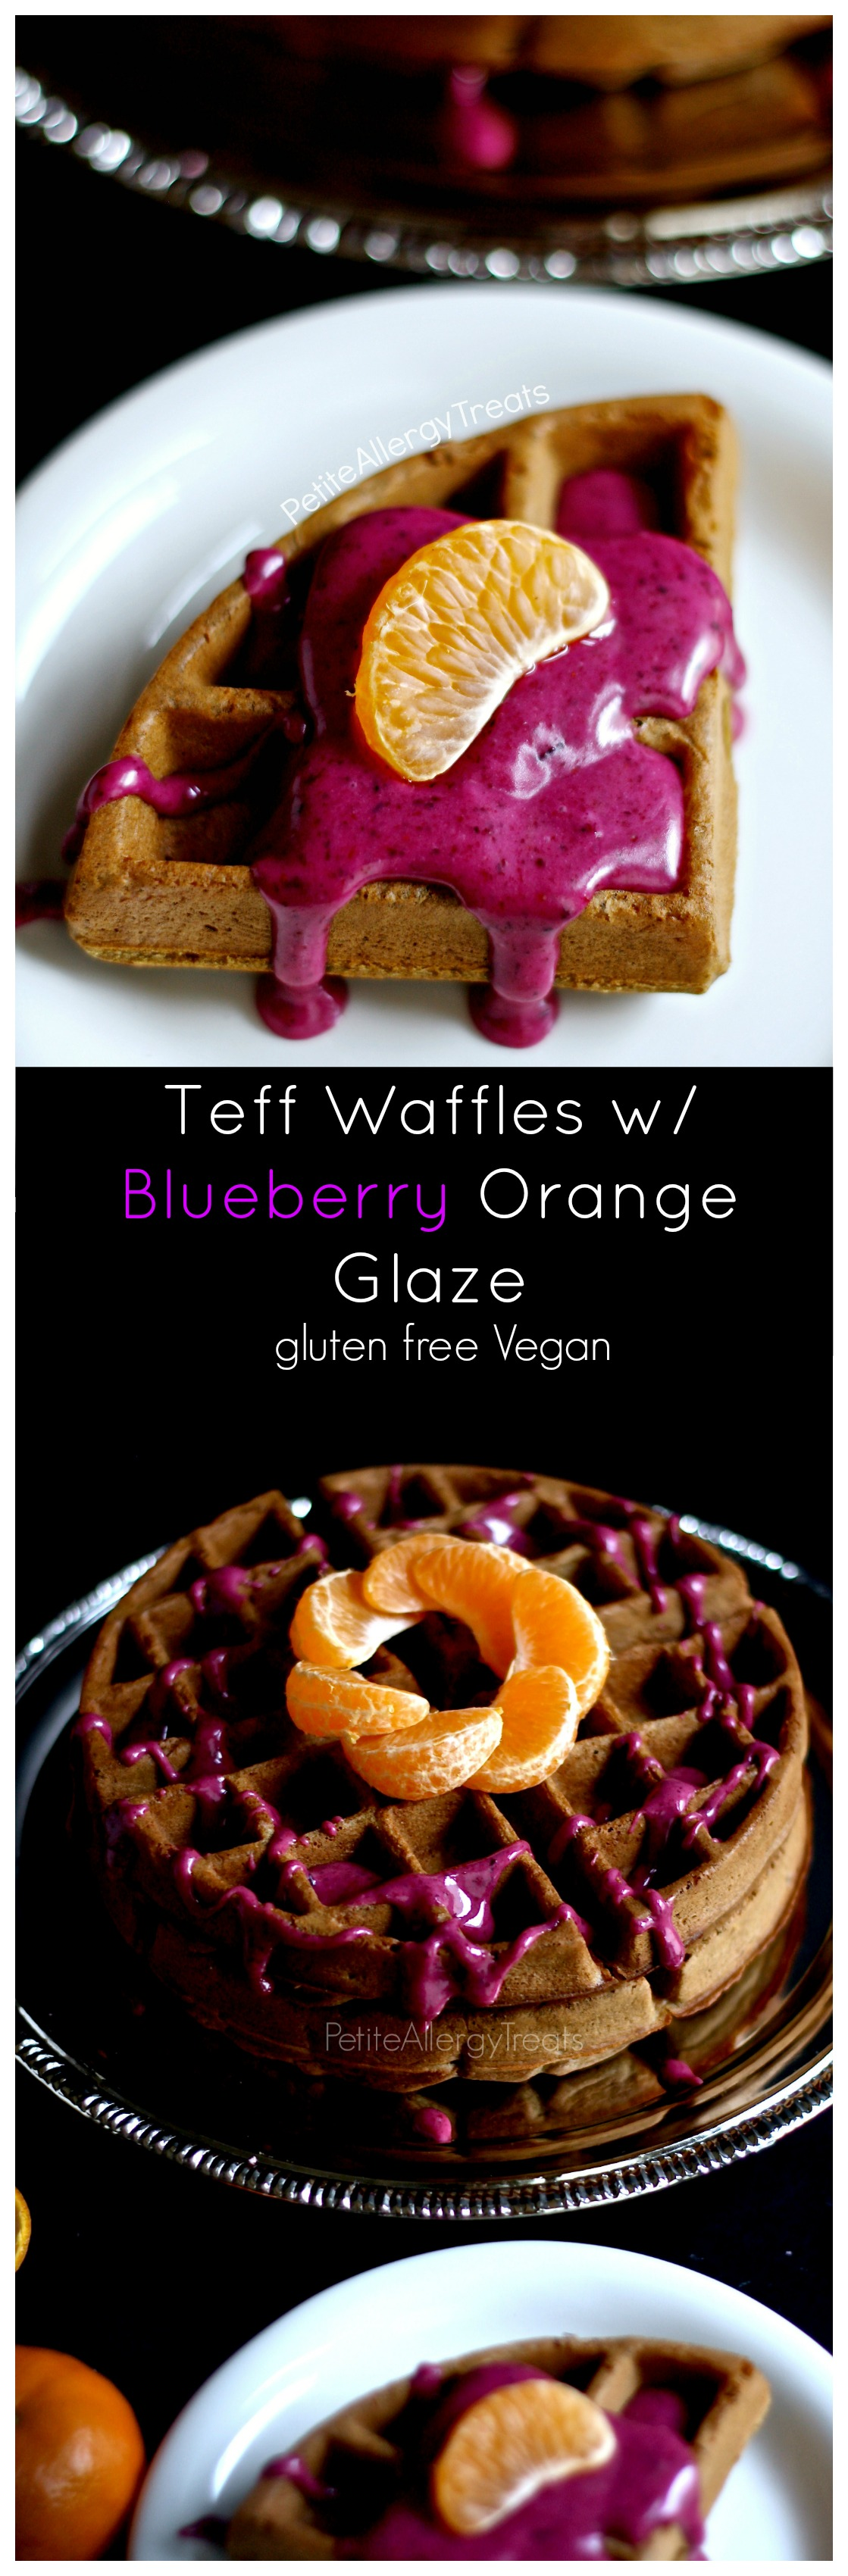 Gluten Free Teff Waffles and Blueberry Orange Glaze (vegan dairy free) Delicious waffles packed with wholesome teff flour and blueberry-orange glaze